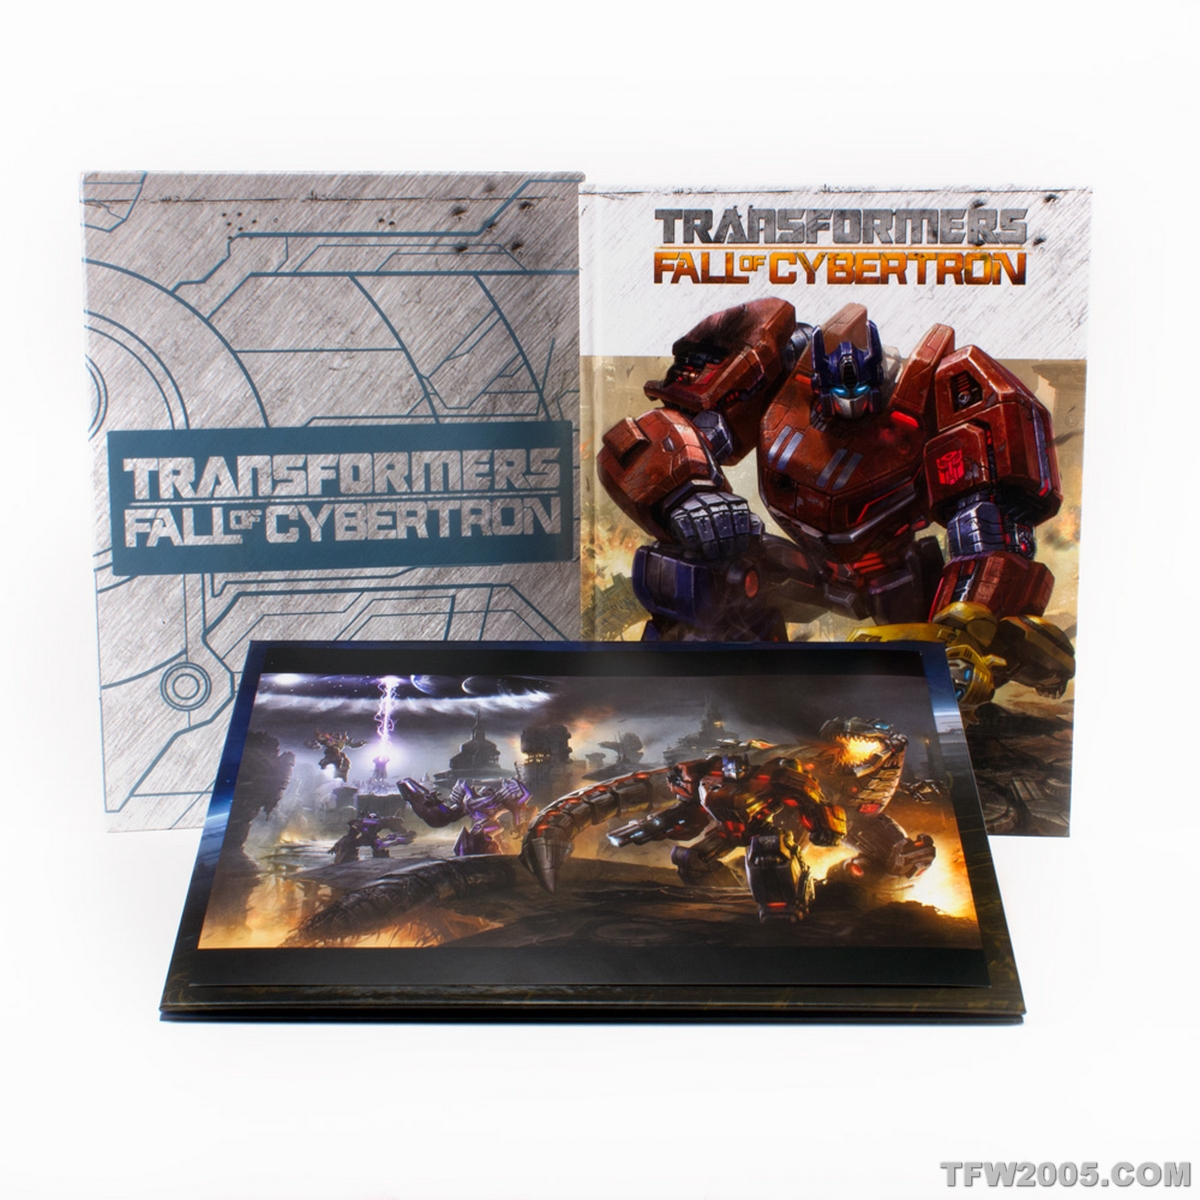 001-Fall-of-cybertron-IDW-Art-Book